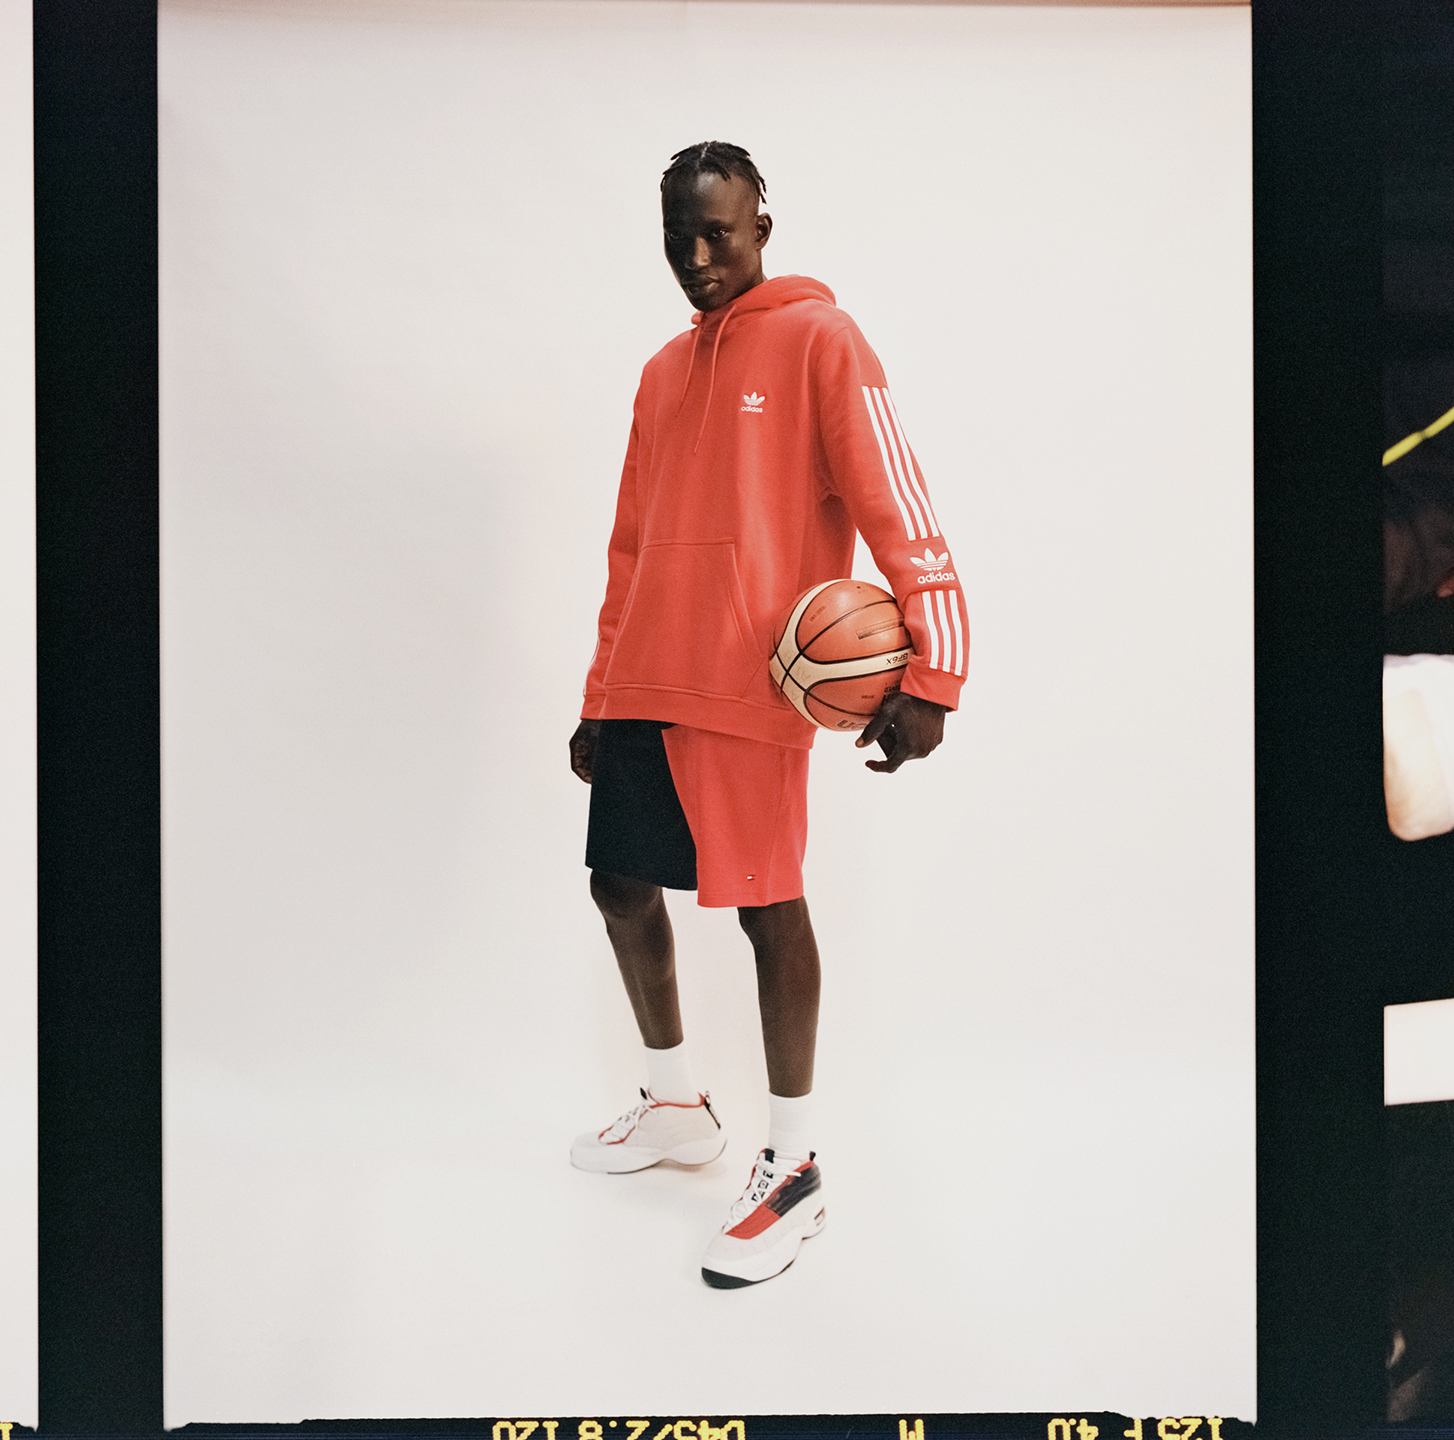 Gabriel Khamis wears Adidas for The Iconic sport campaign